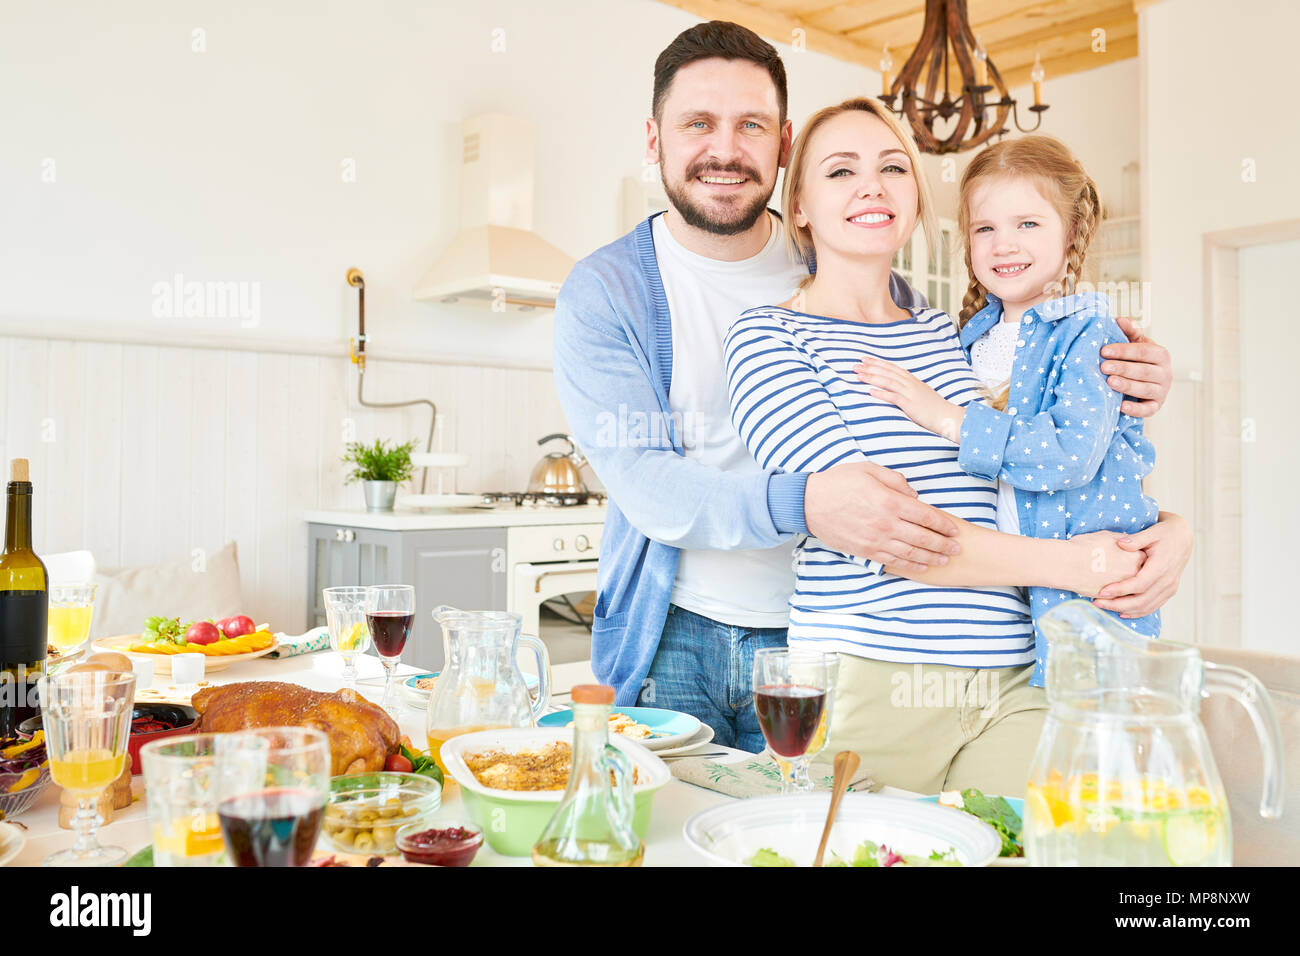 Successful Young Family Posing at Dinner Table - Stock Image